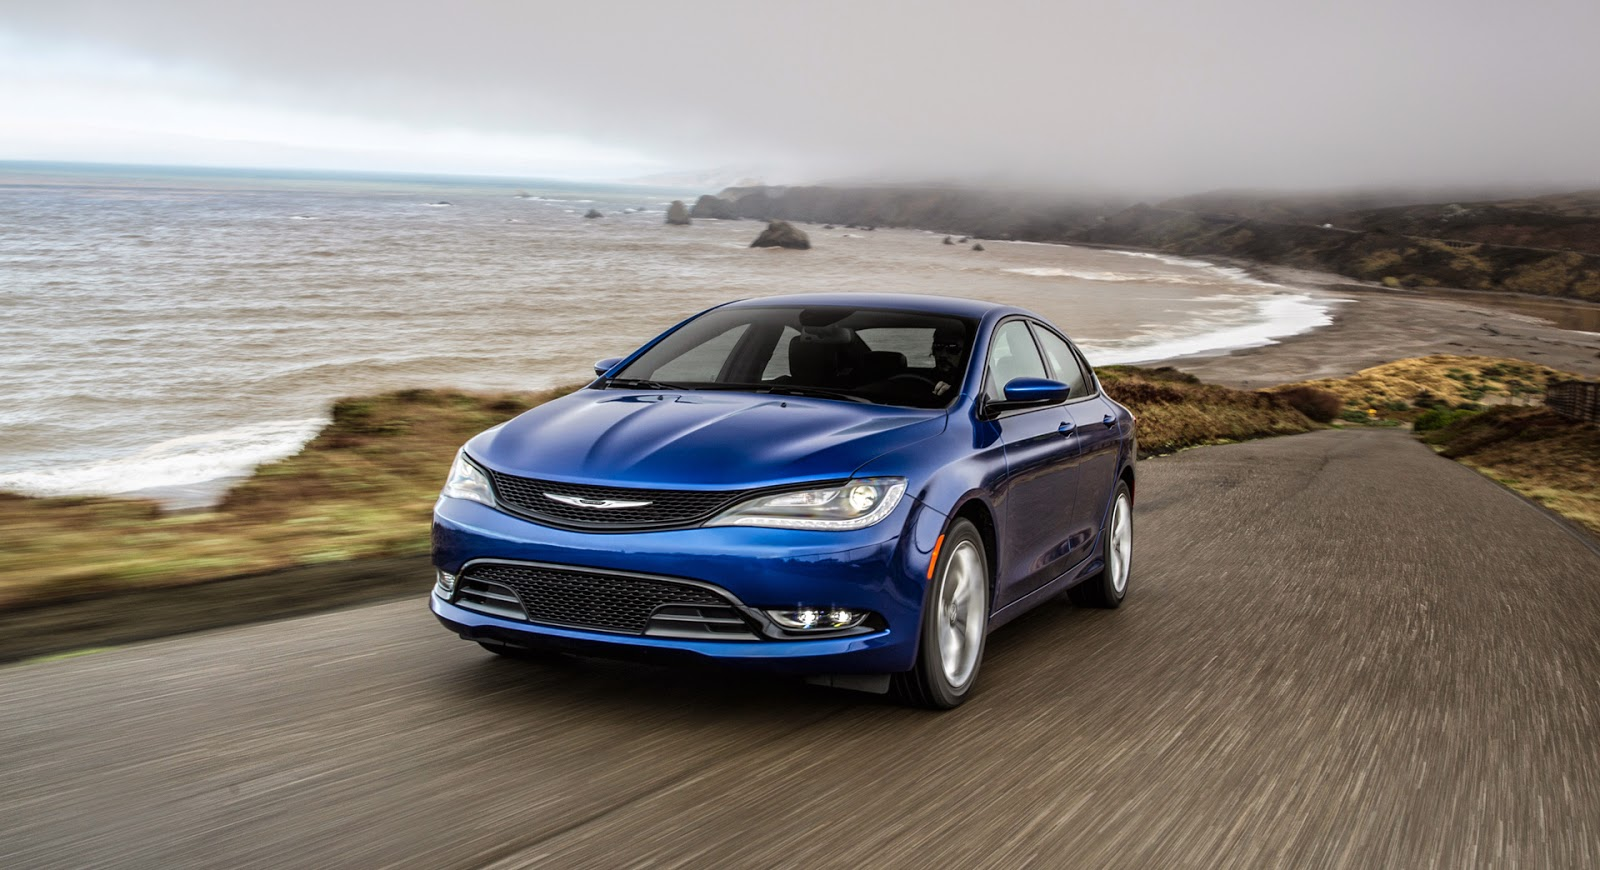 2015 Chrysler 200 Midsize Sedan is Reimagined